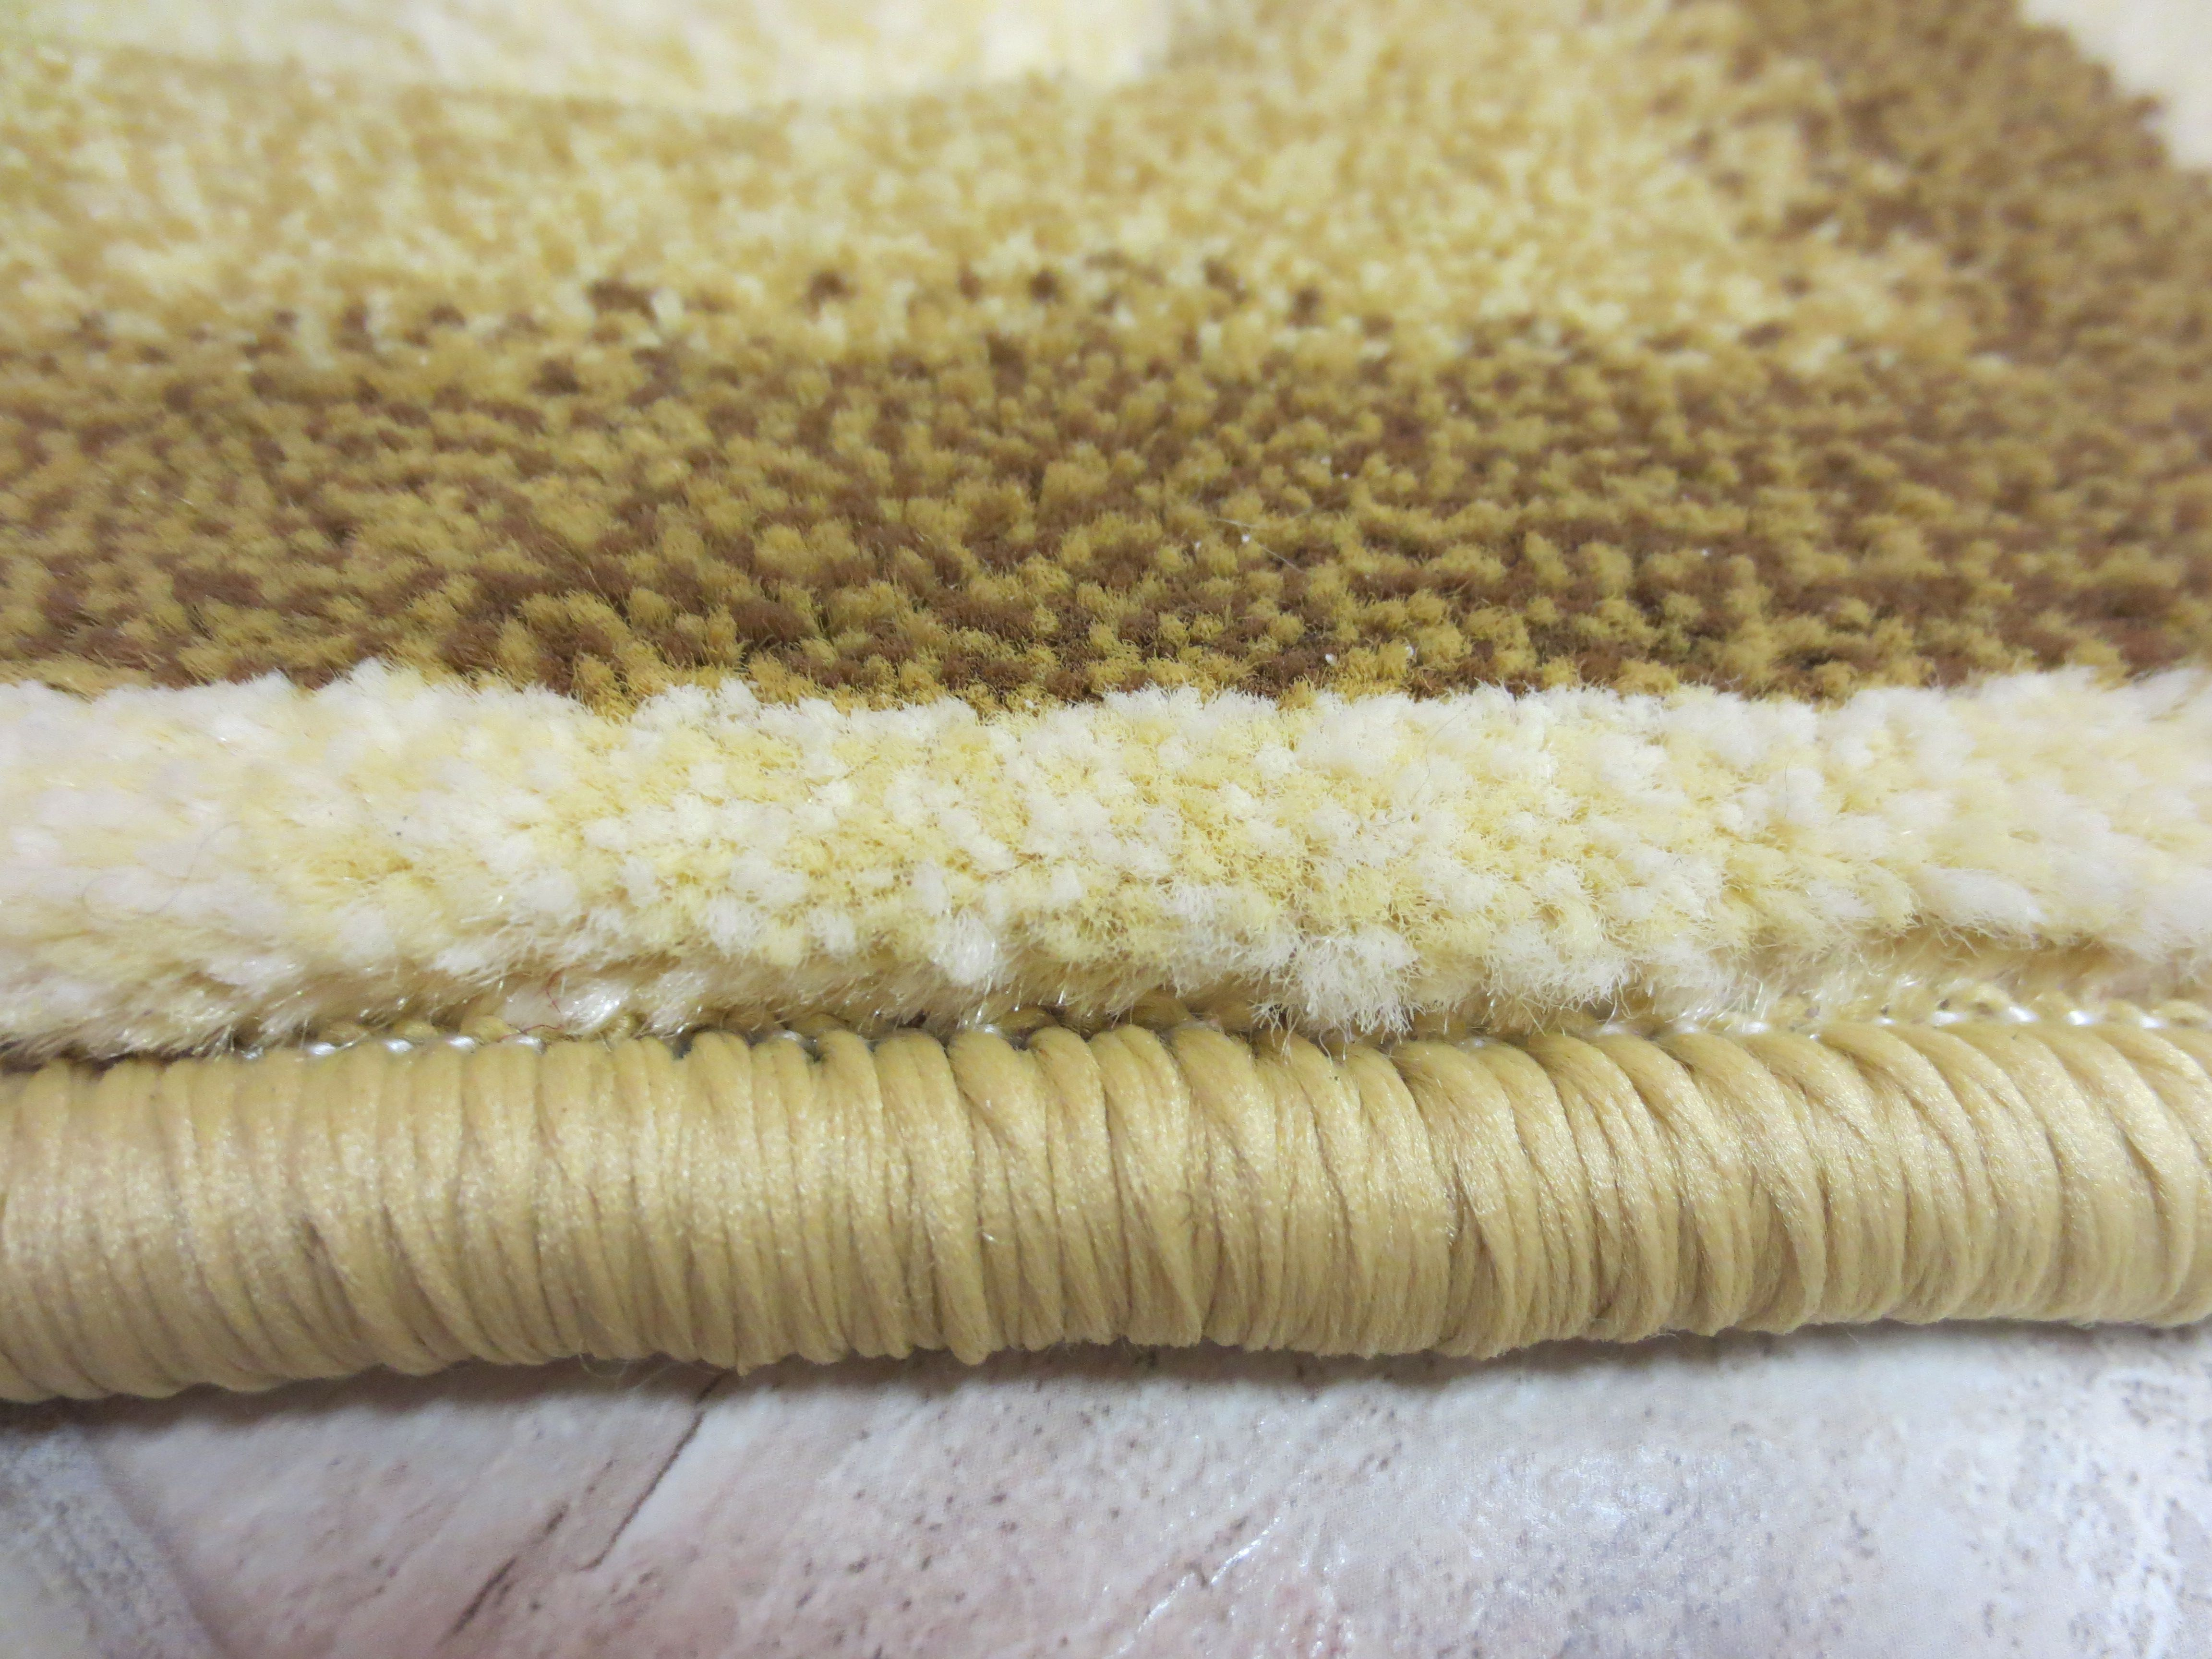 3 Options For Stitching Carpet Edges To Make A Rug